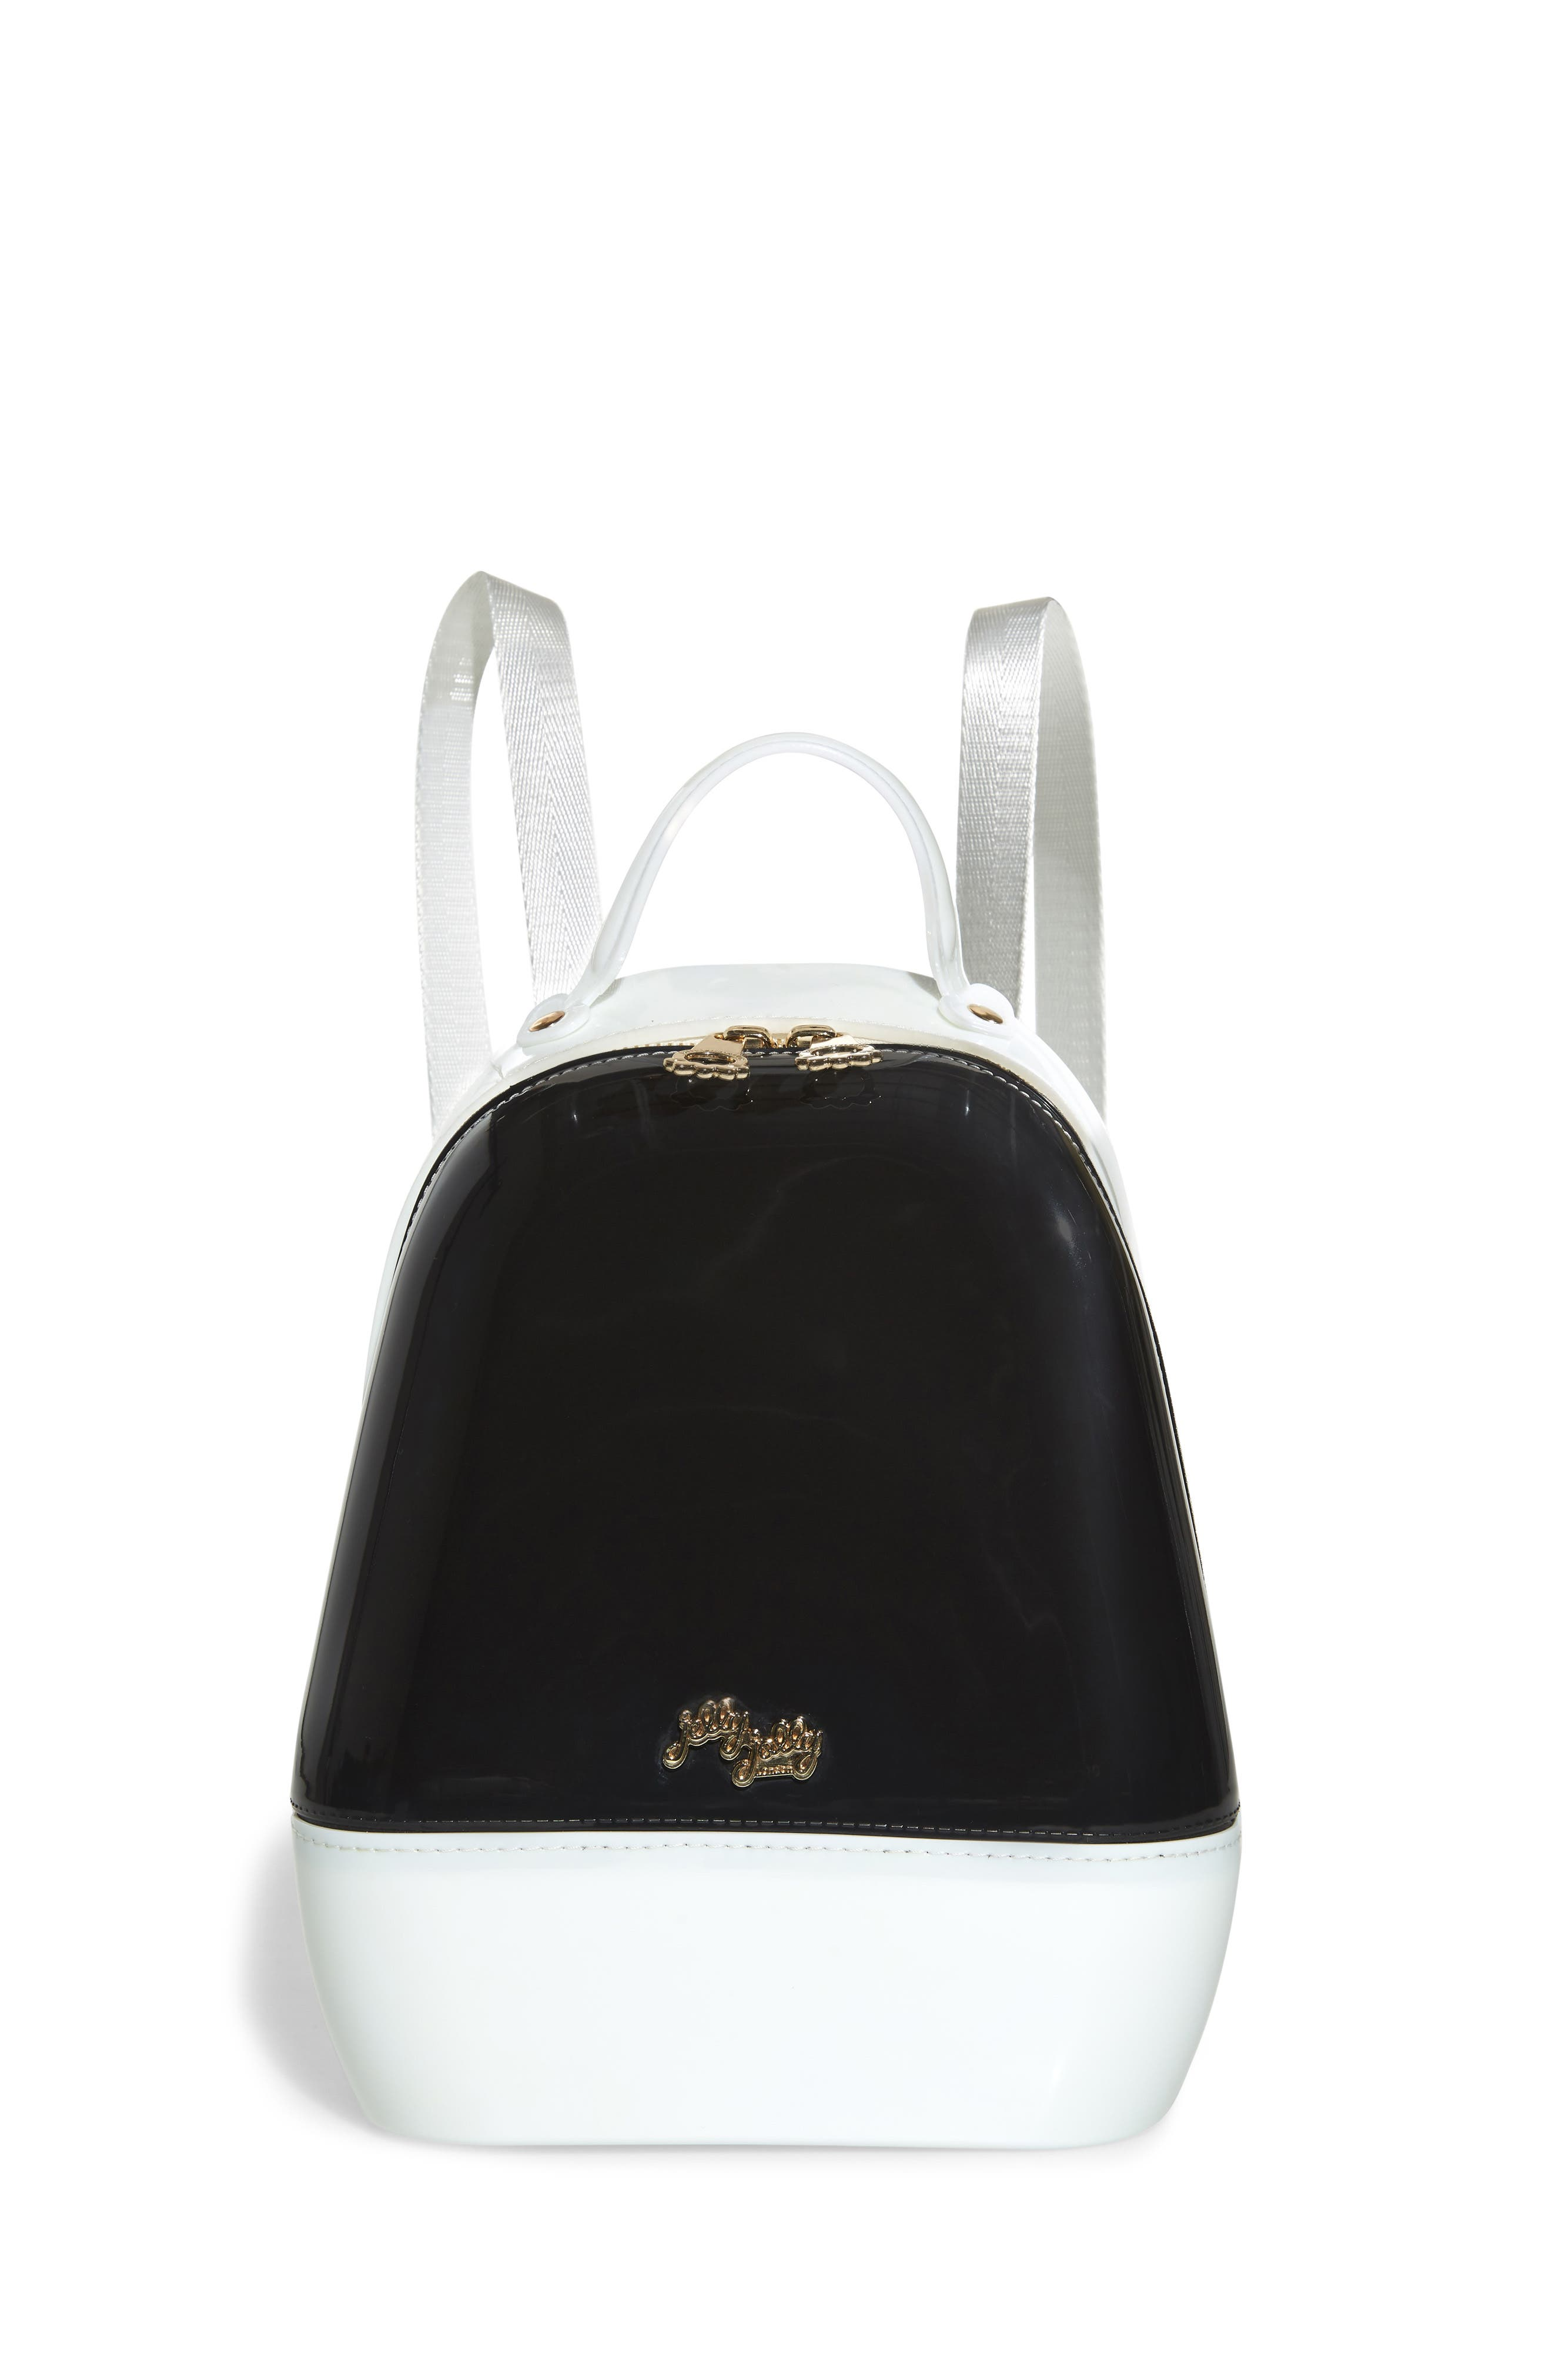 Annabelle Backpack,                         Main,                         color, BLACK AND WHITE